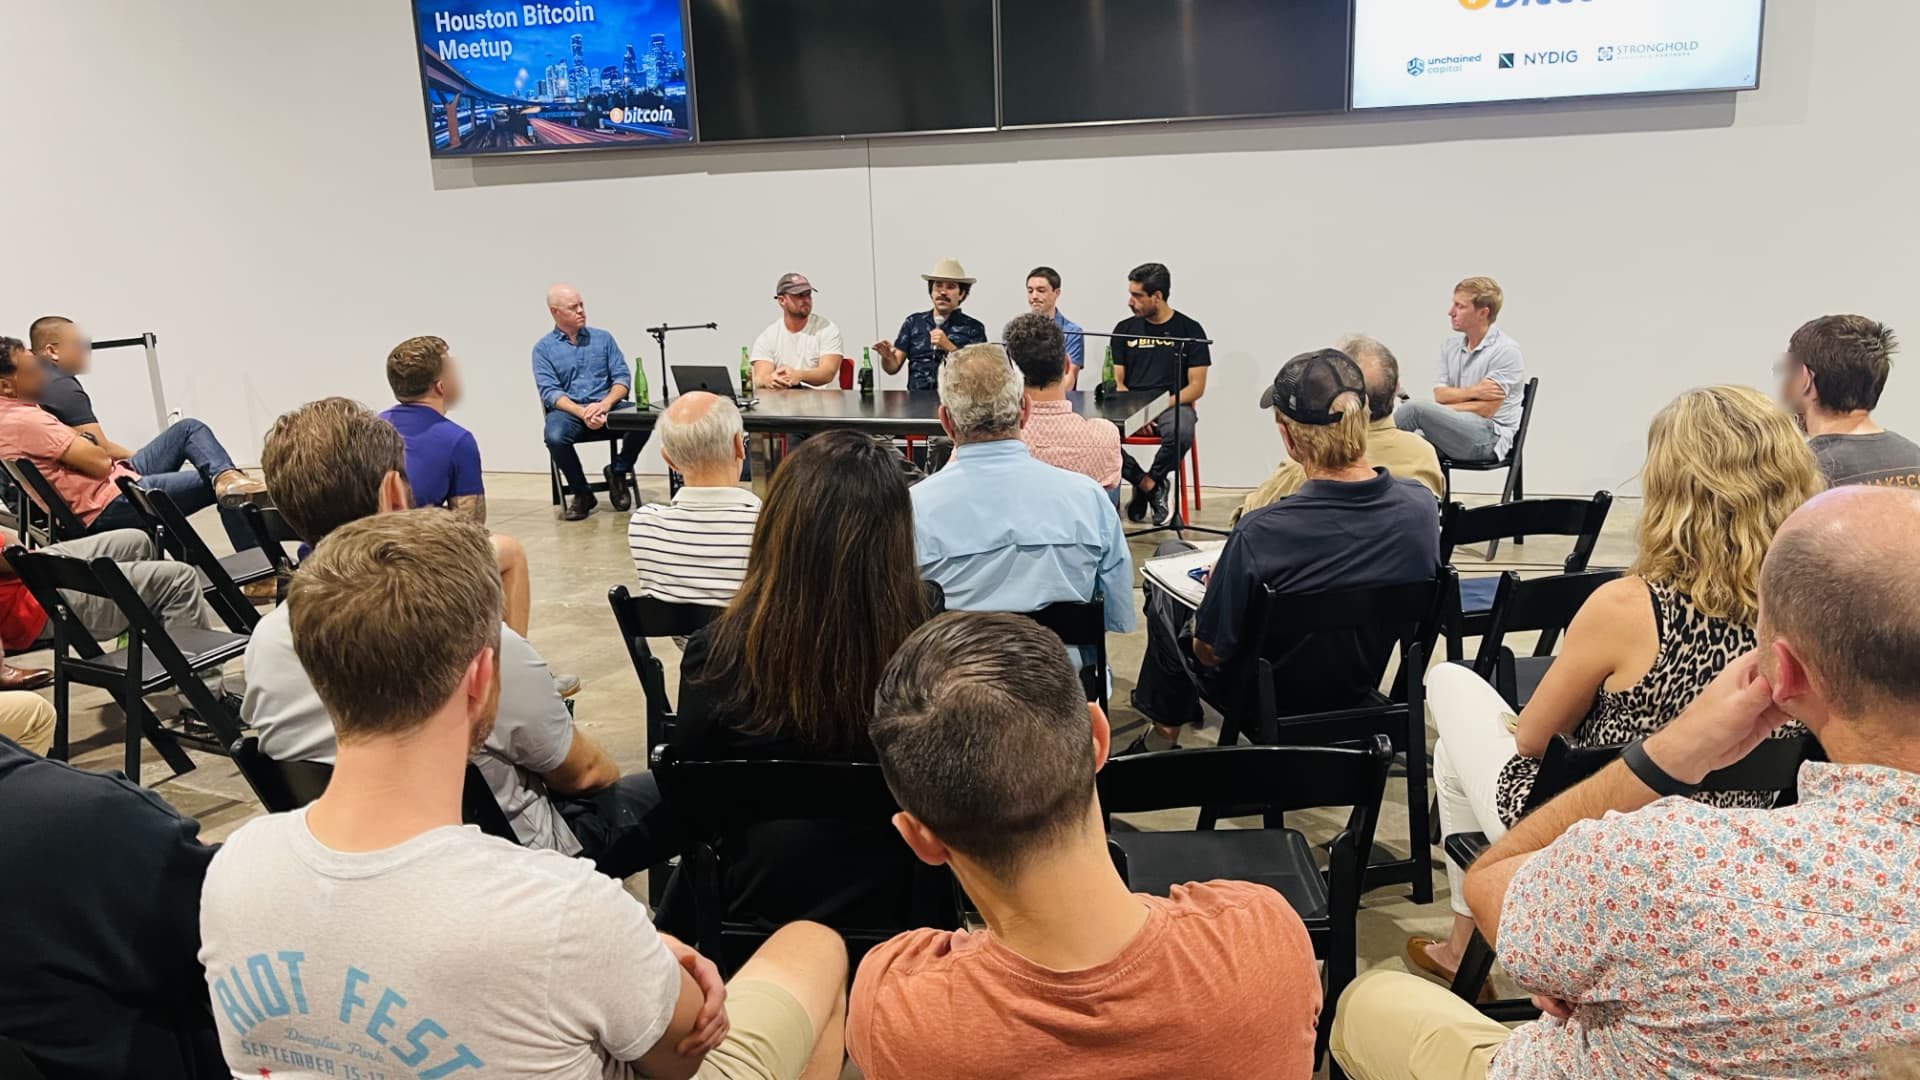 A panel of bitcoin miners and oil & gas execs share what it's like to mine bitcoin in Texas.